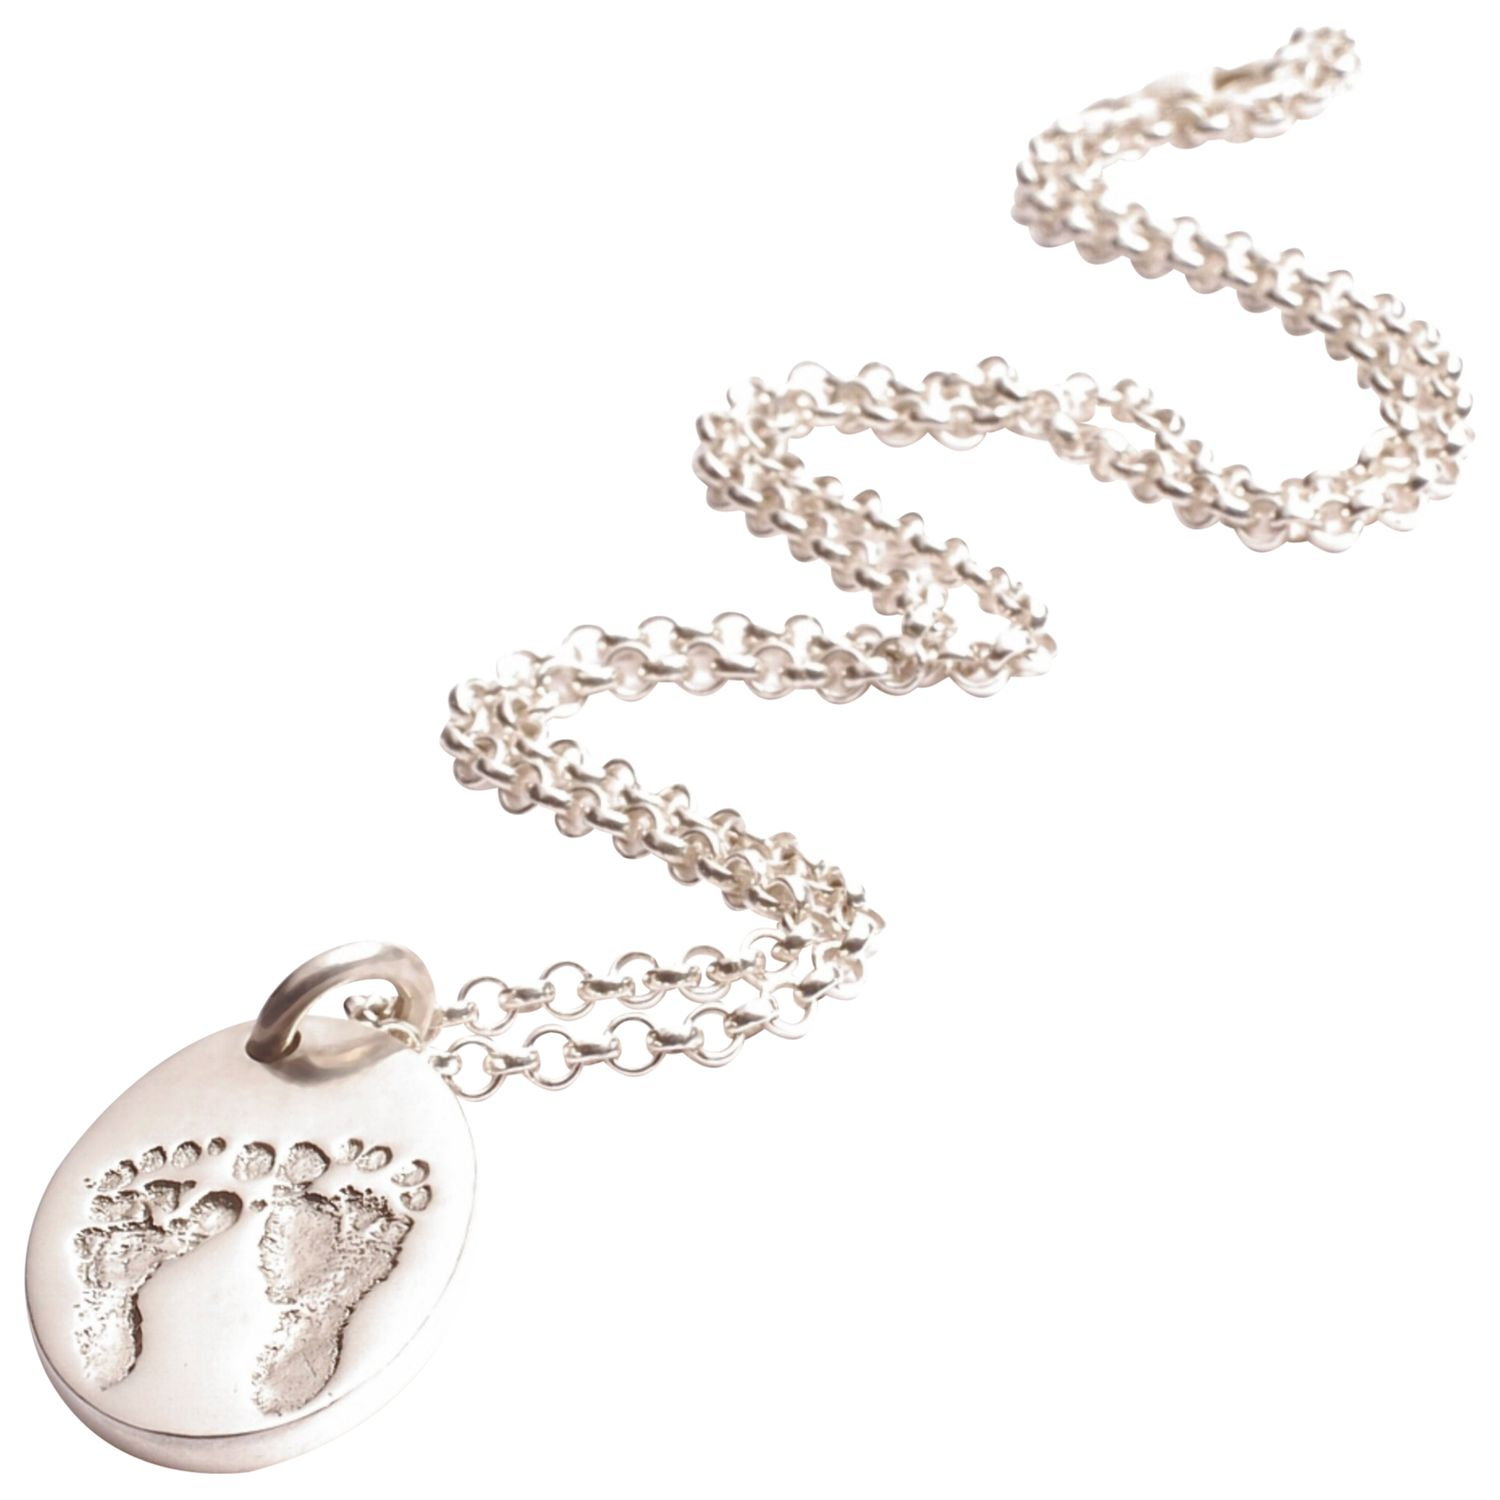 FingerPrint Jewellery FingerPrint Jewellery Ten Tiny Toes Oval Pendant Necklace, Silver